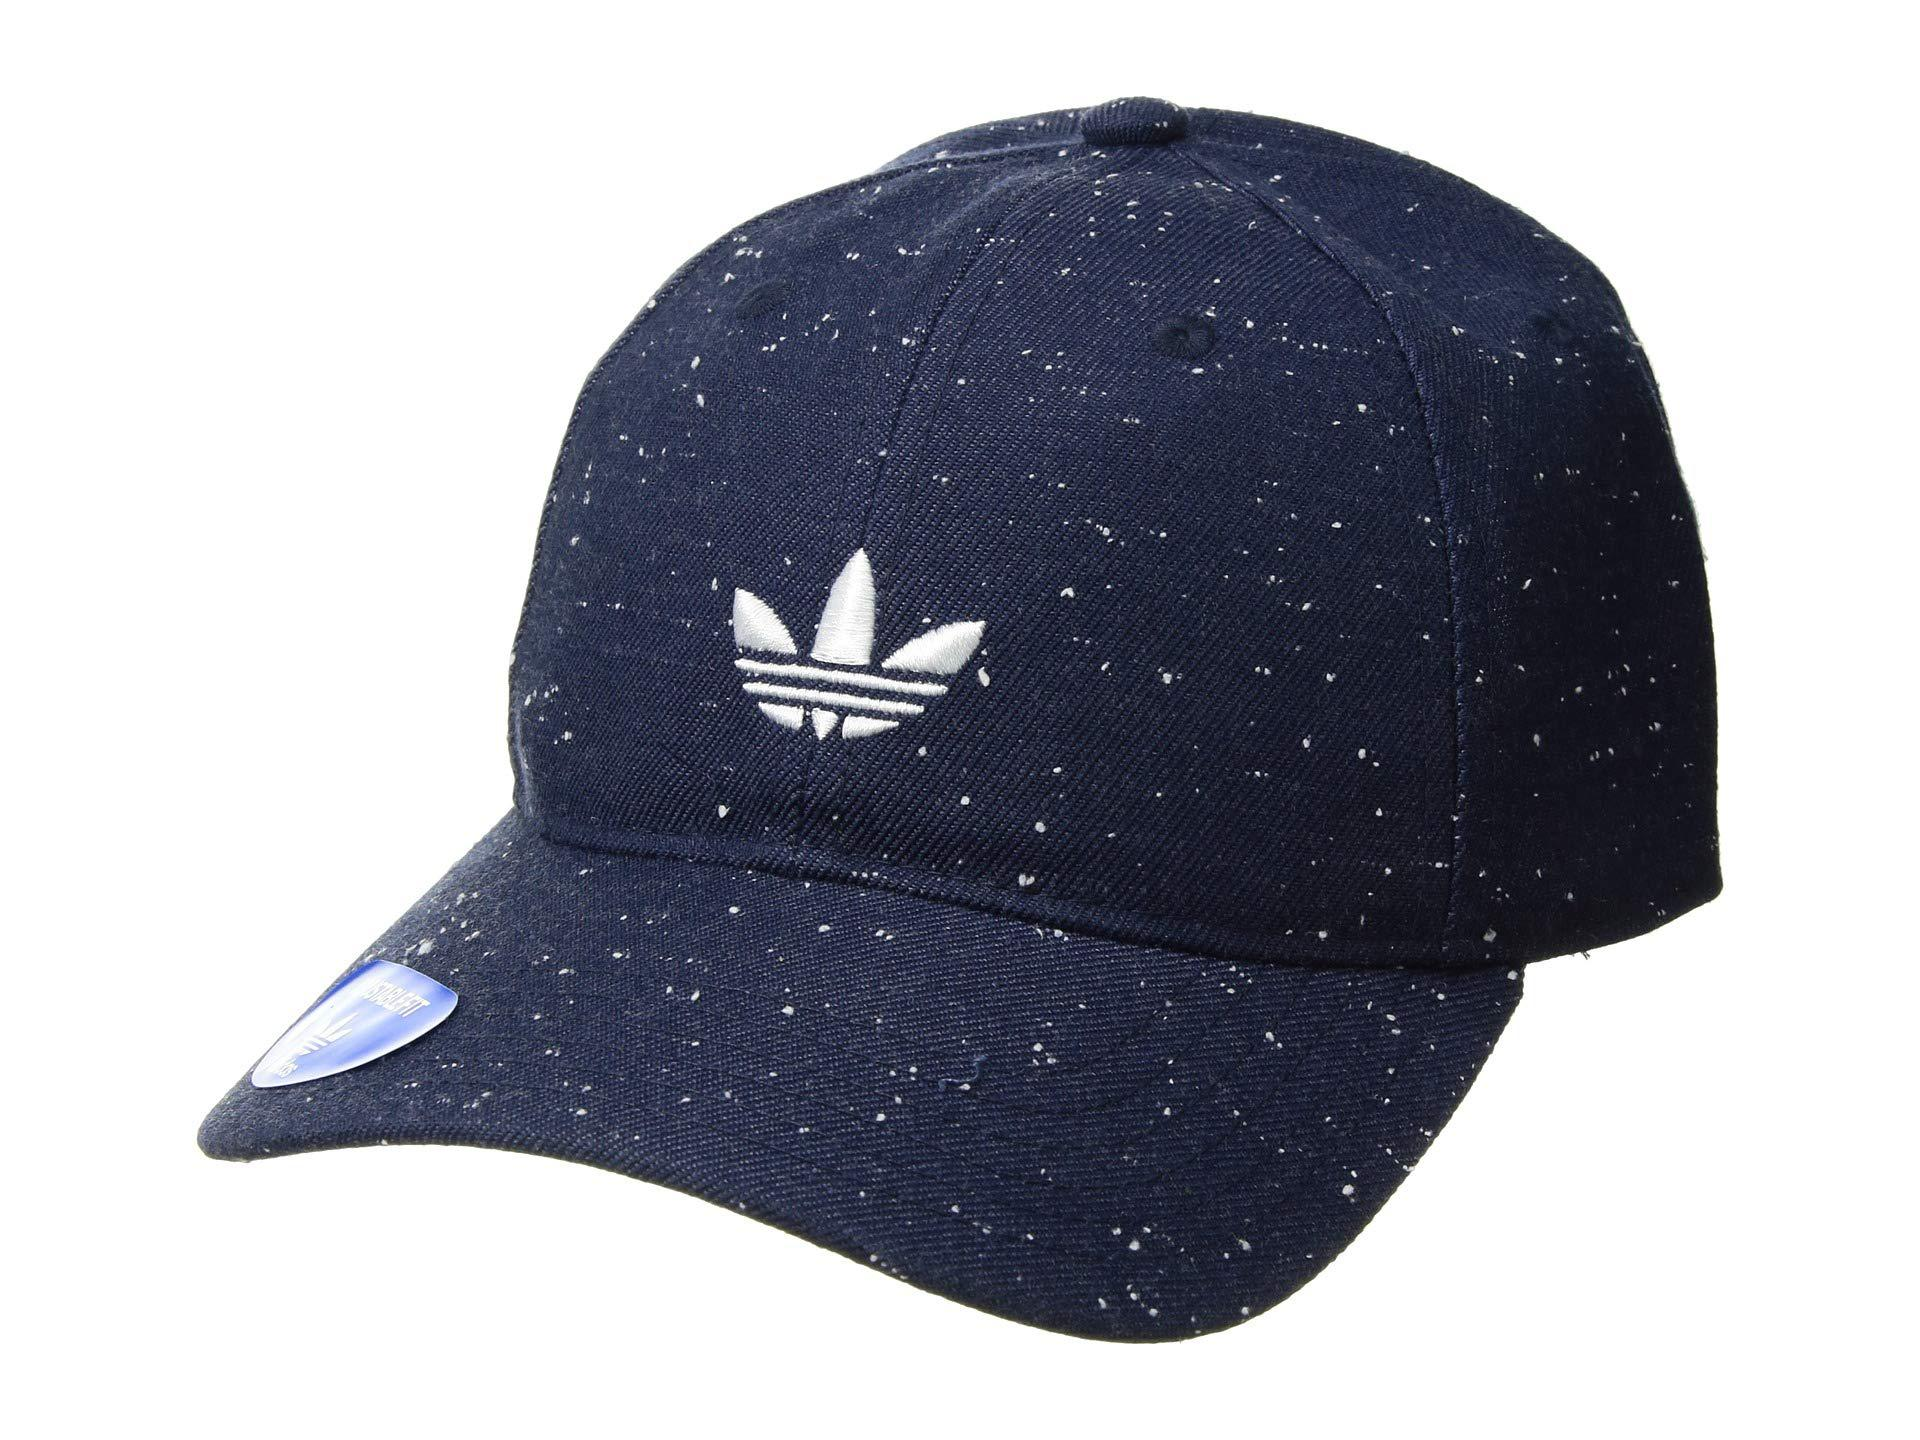 ce77f4deb14 Lyst - adidas Originals Originals Relaxed Wool Strapback (clear ...